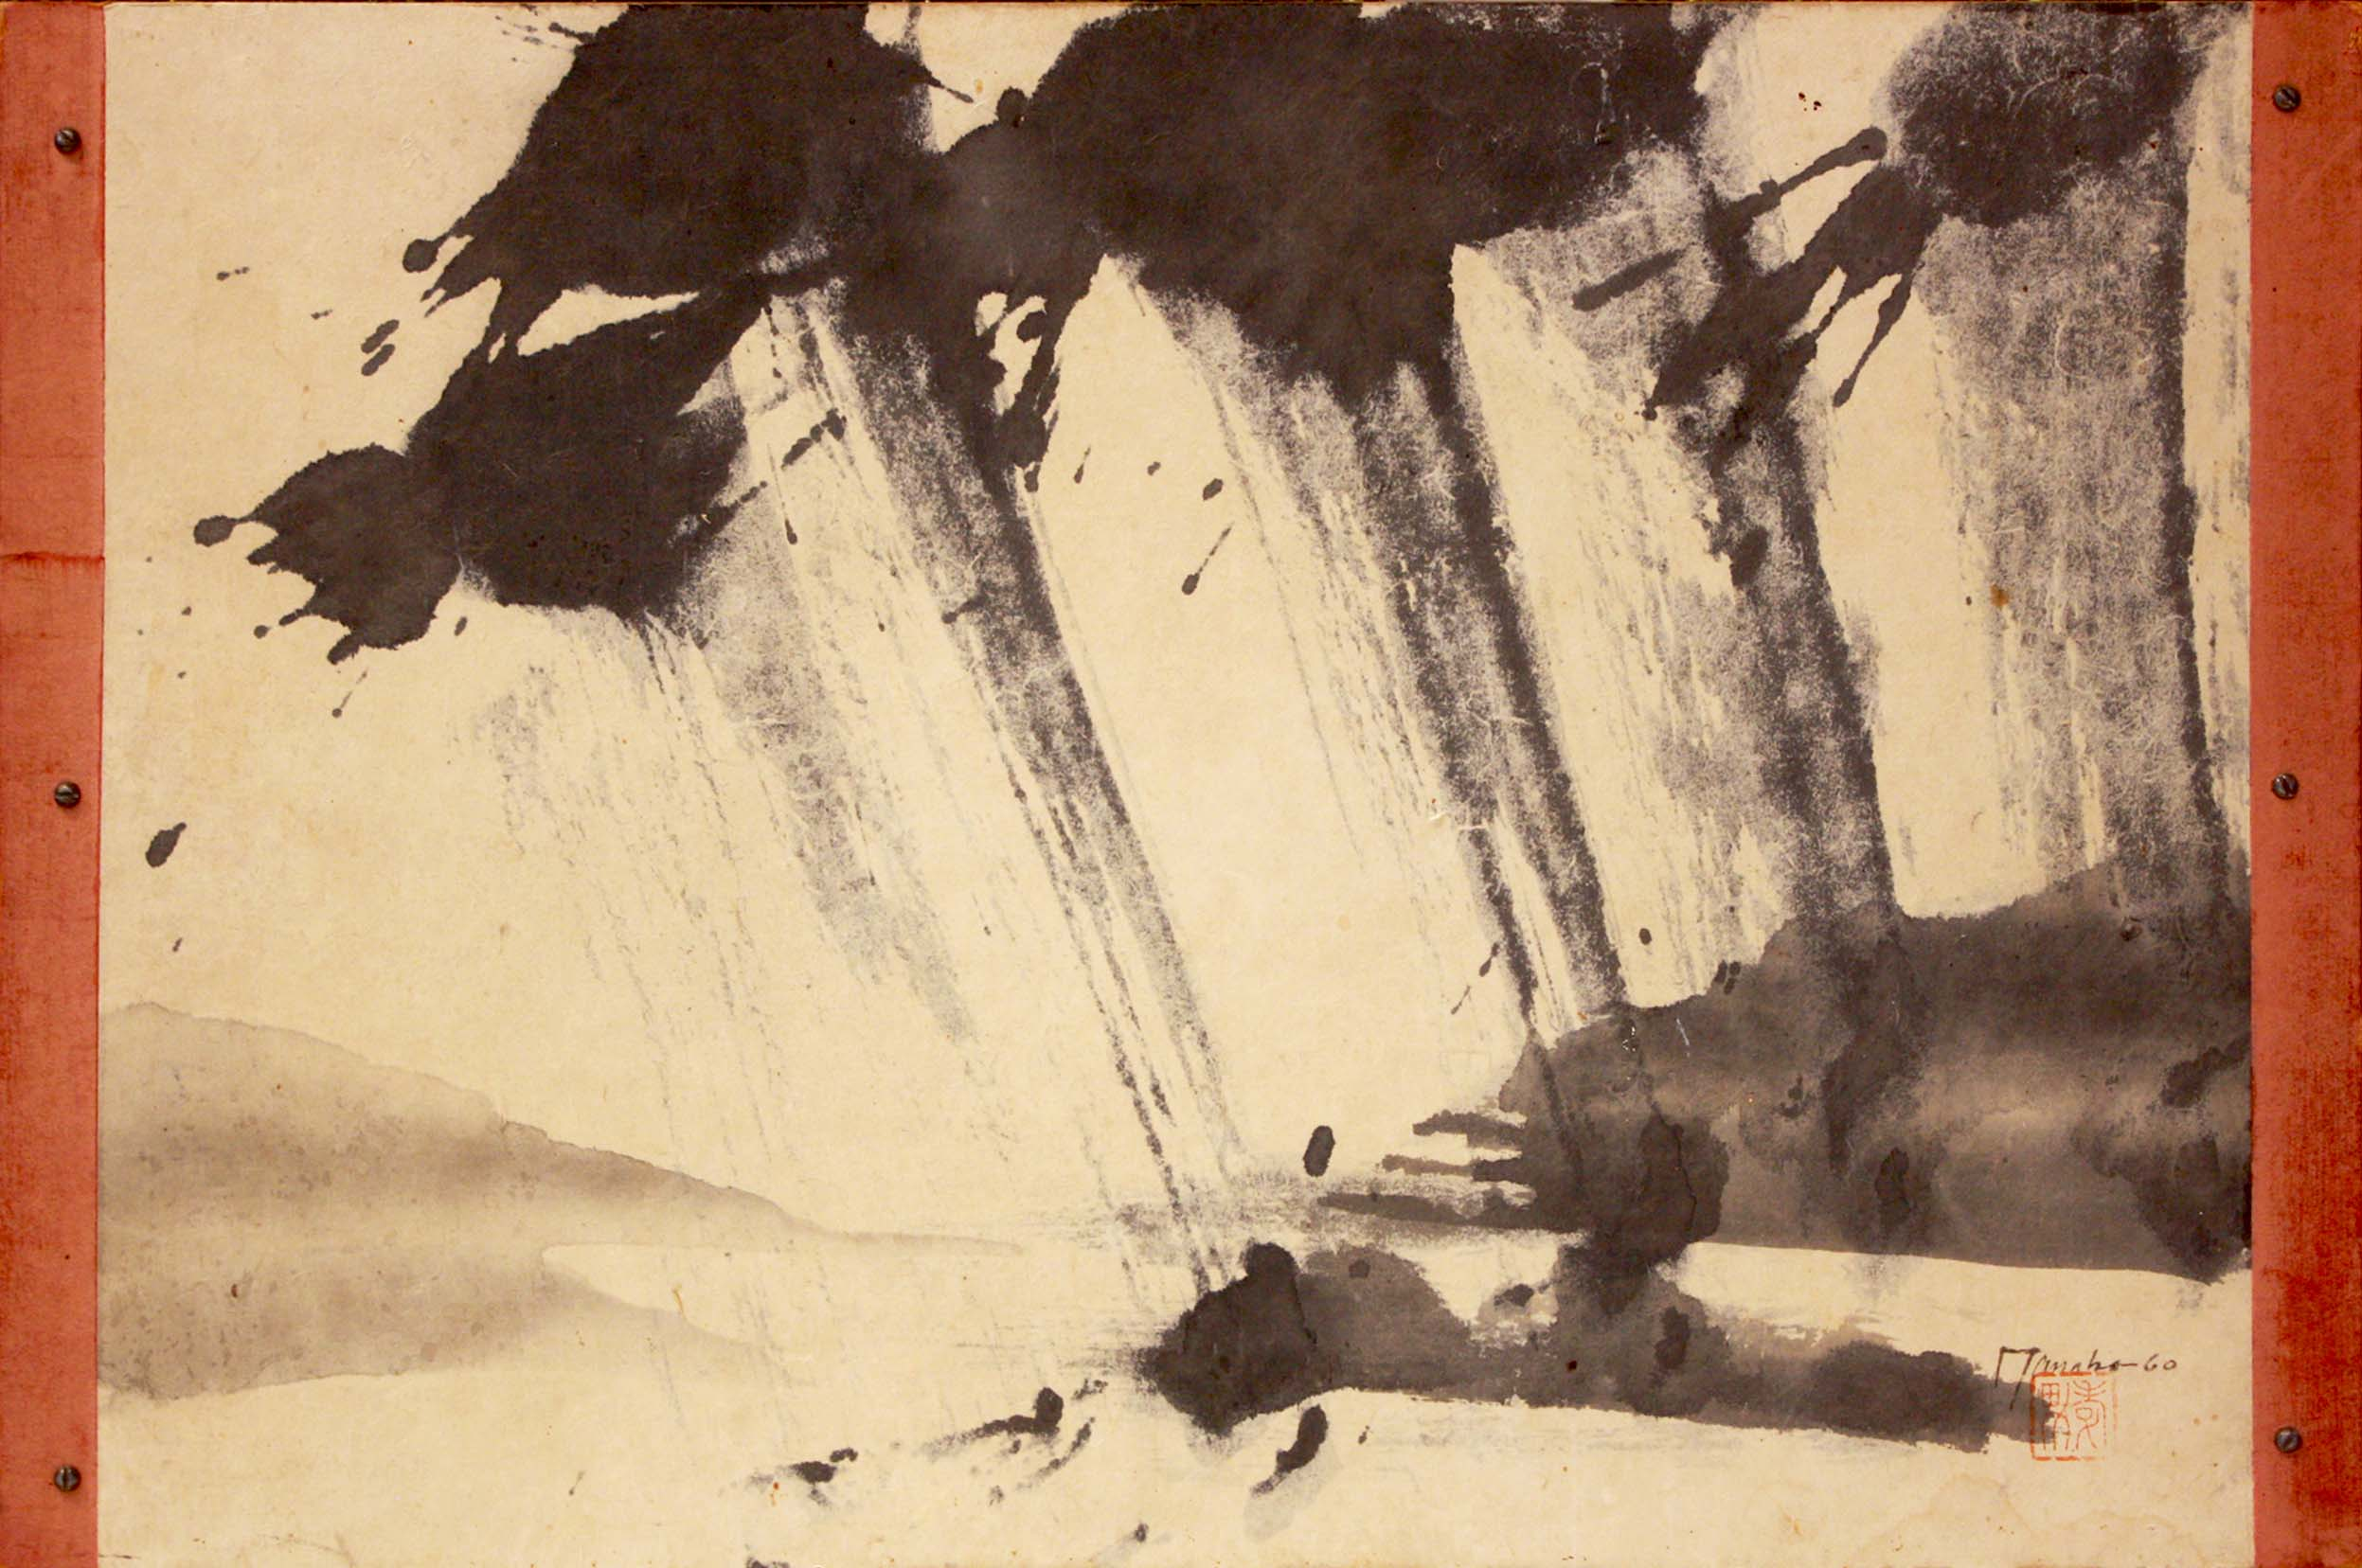 Takao Tanabe<br>Storm over Islands<br>14.5 x 22<br>Ink on Paper on Board<br>SOLD